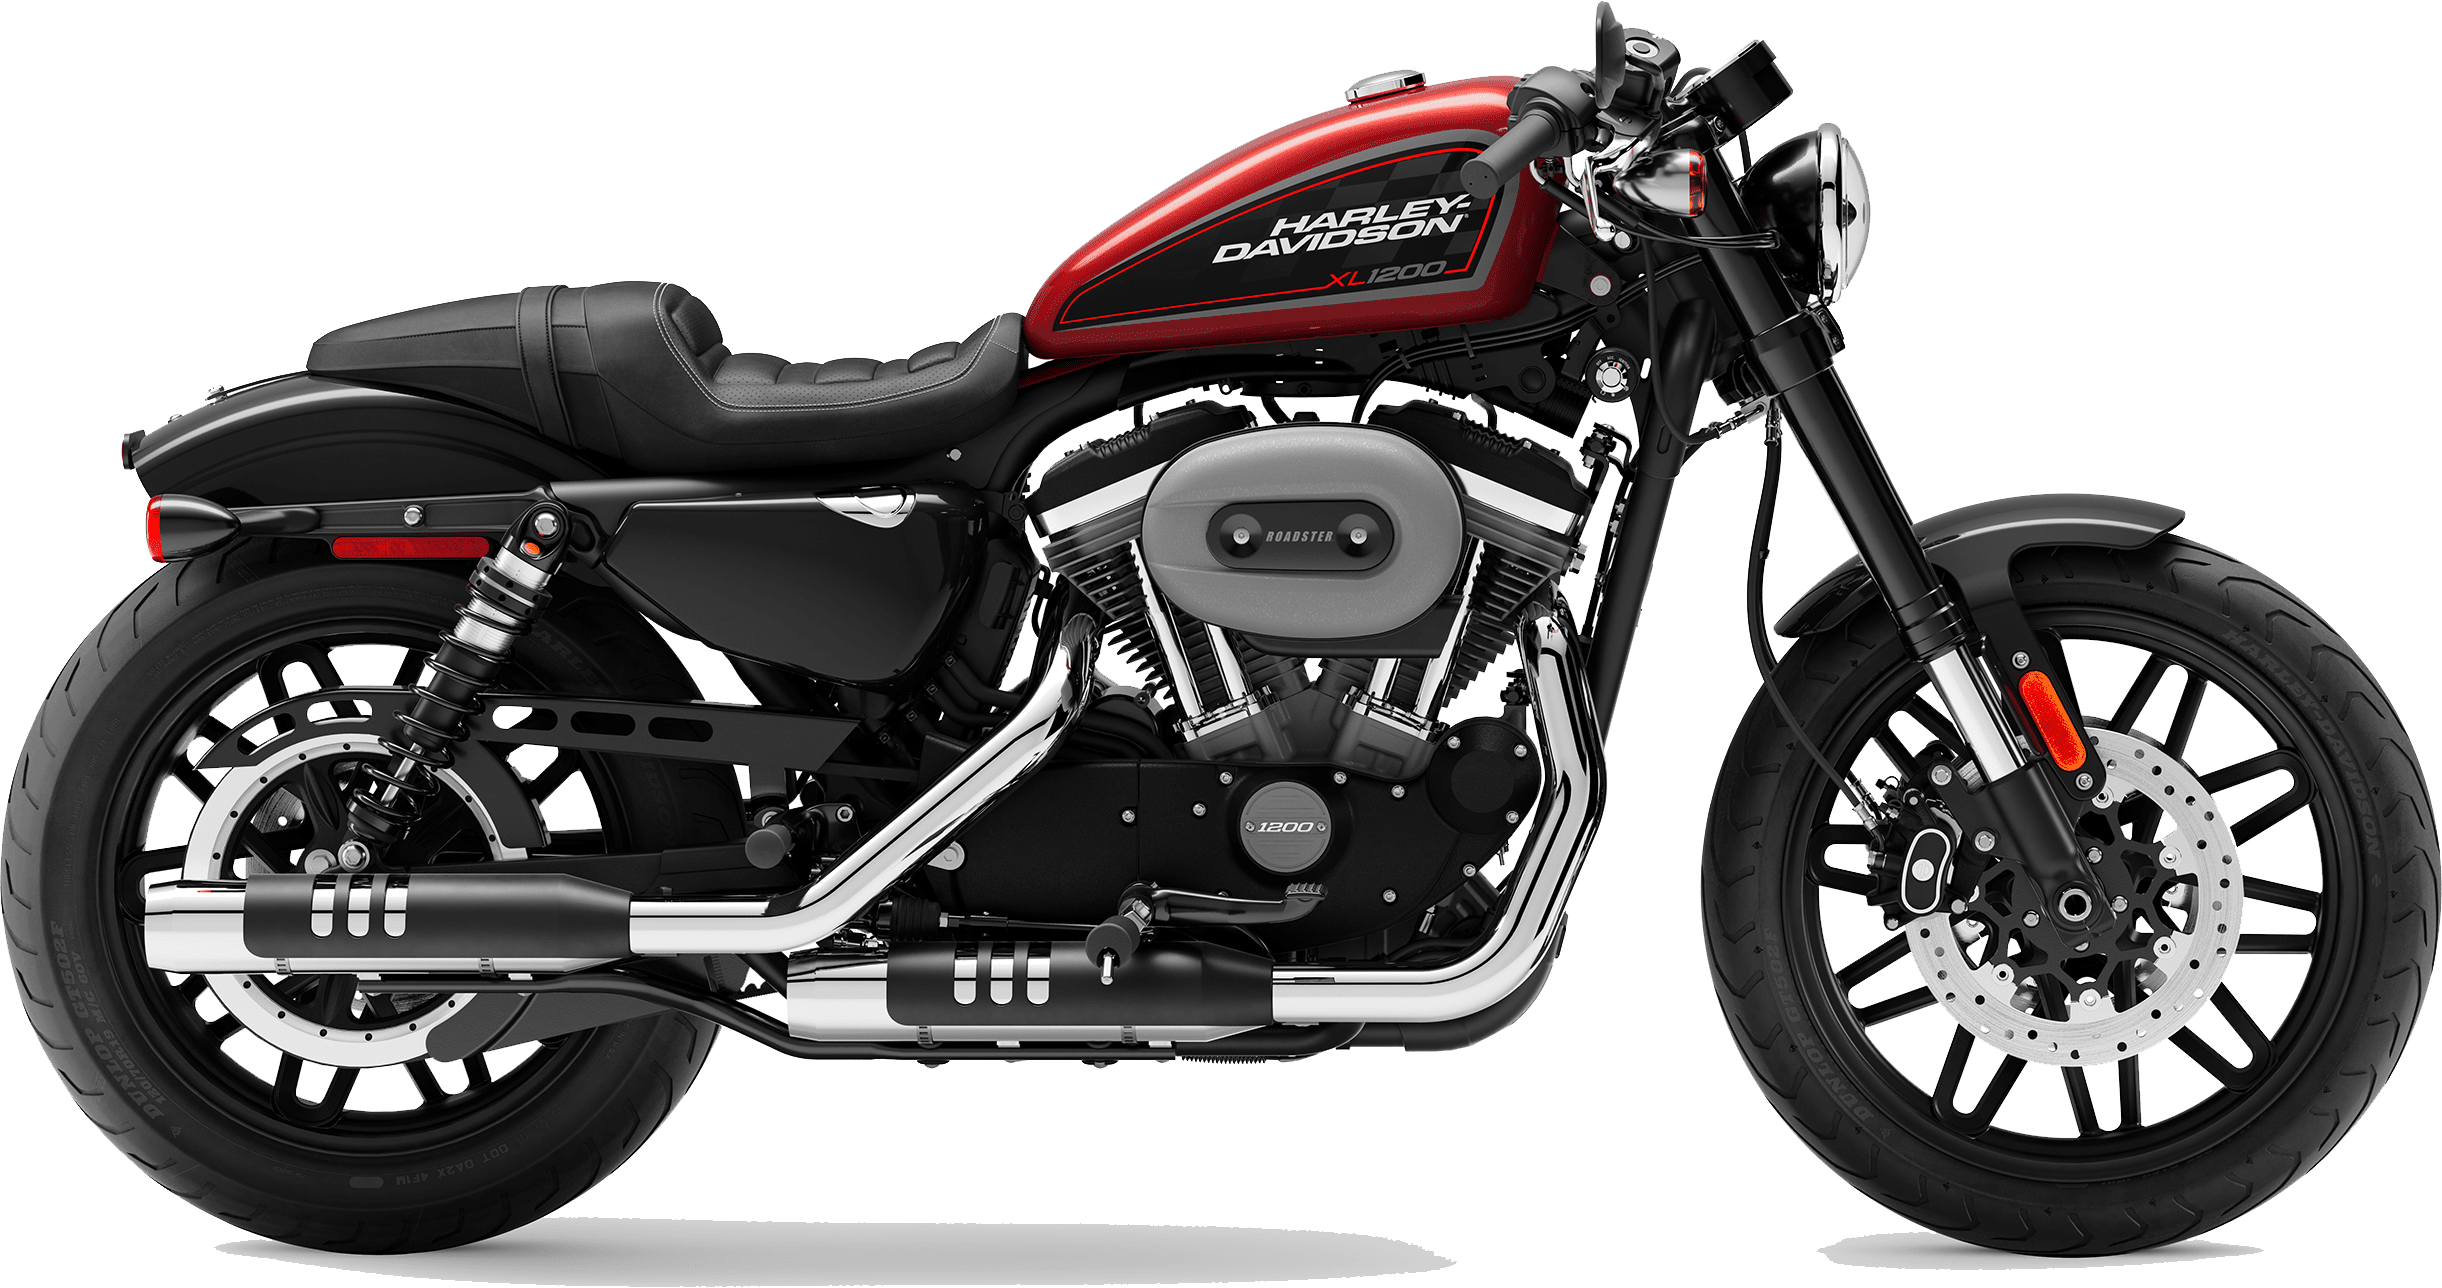 2019 Harley-Davidson H-D Sportster Roadster Wicked Red